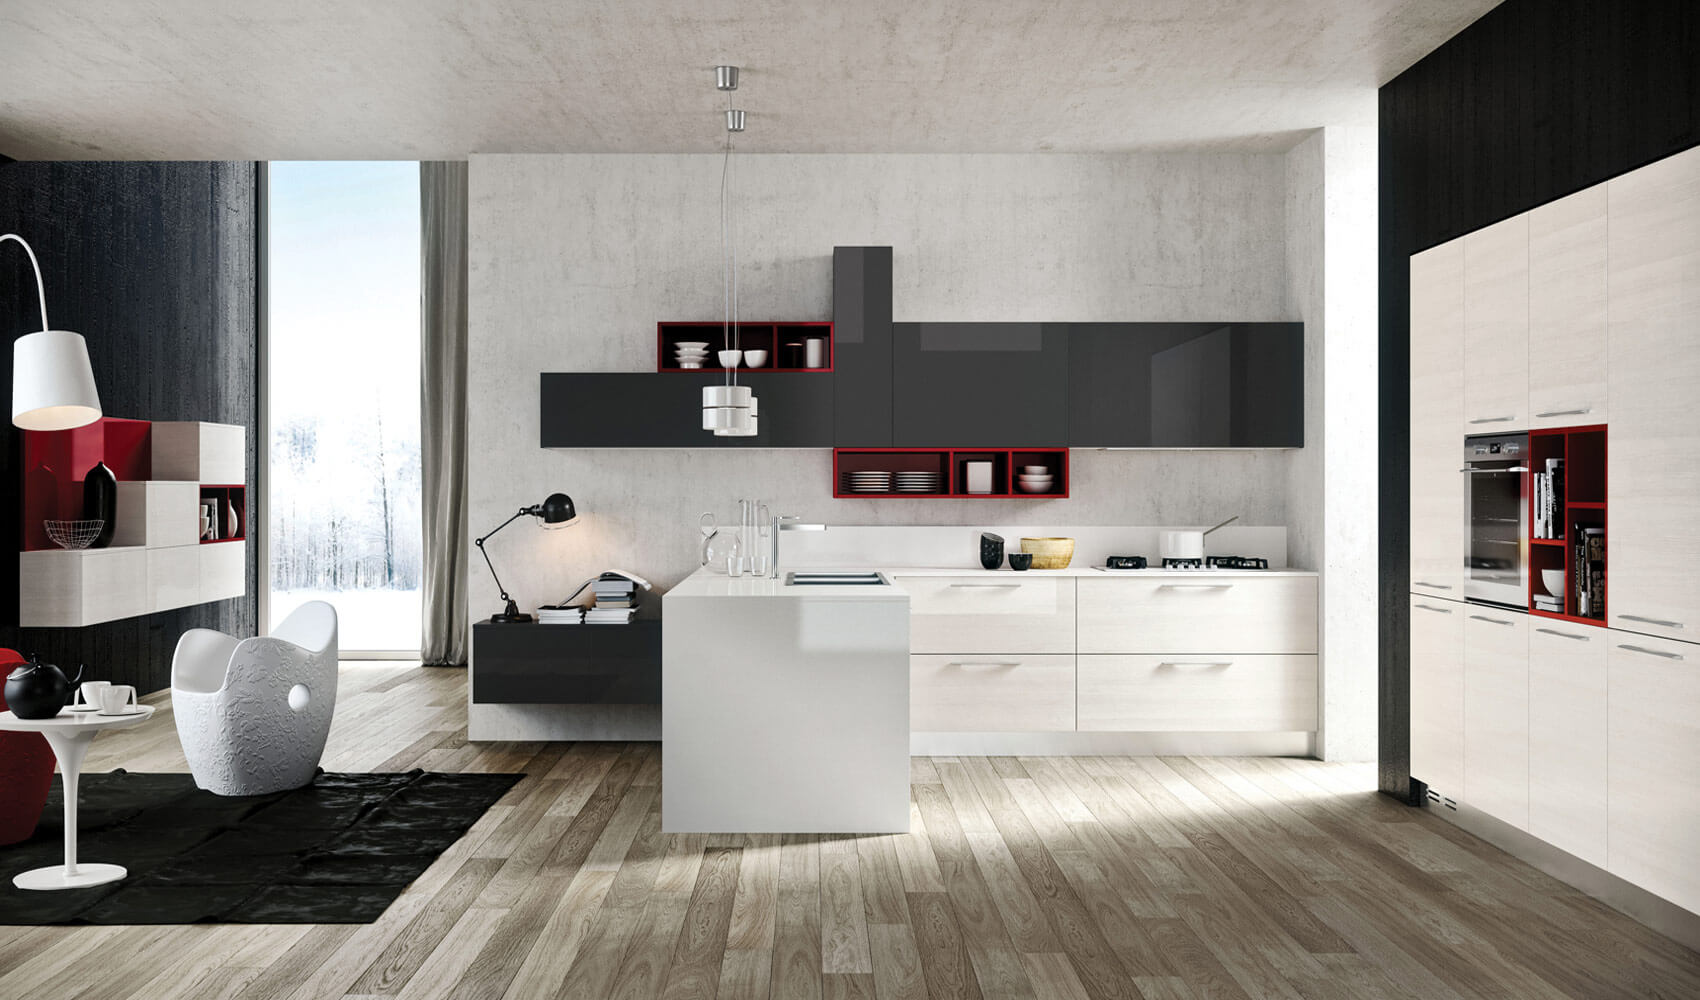 Modern kitchen design with pop style in black and white